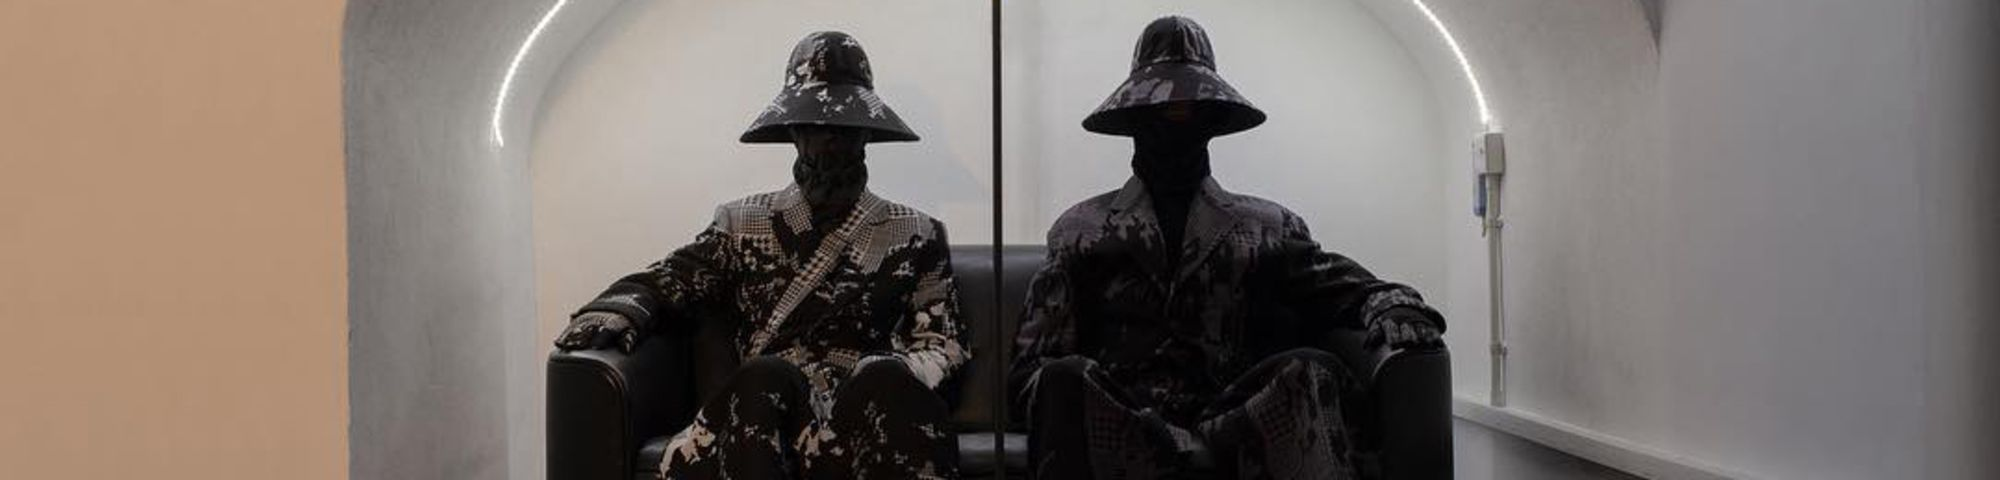 Two models wearing the same clothes with big hats and their faces covered, sitting side by side on two arm chairs